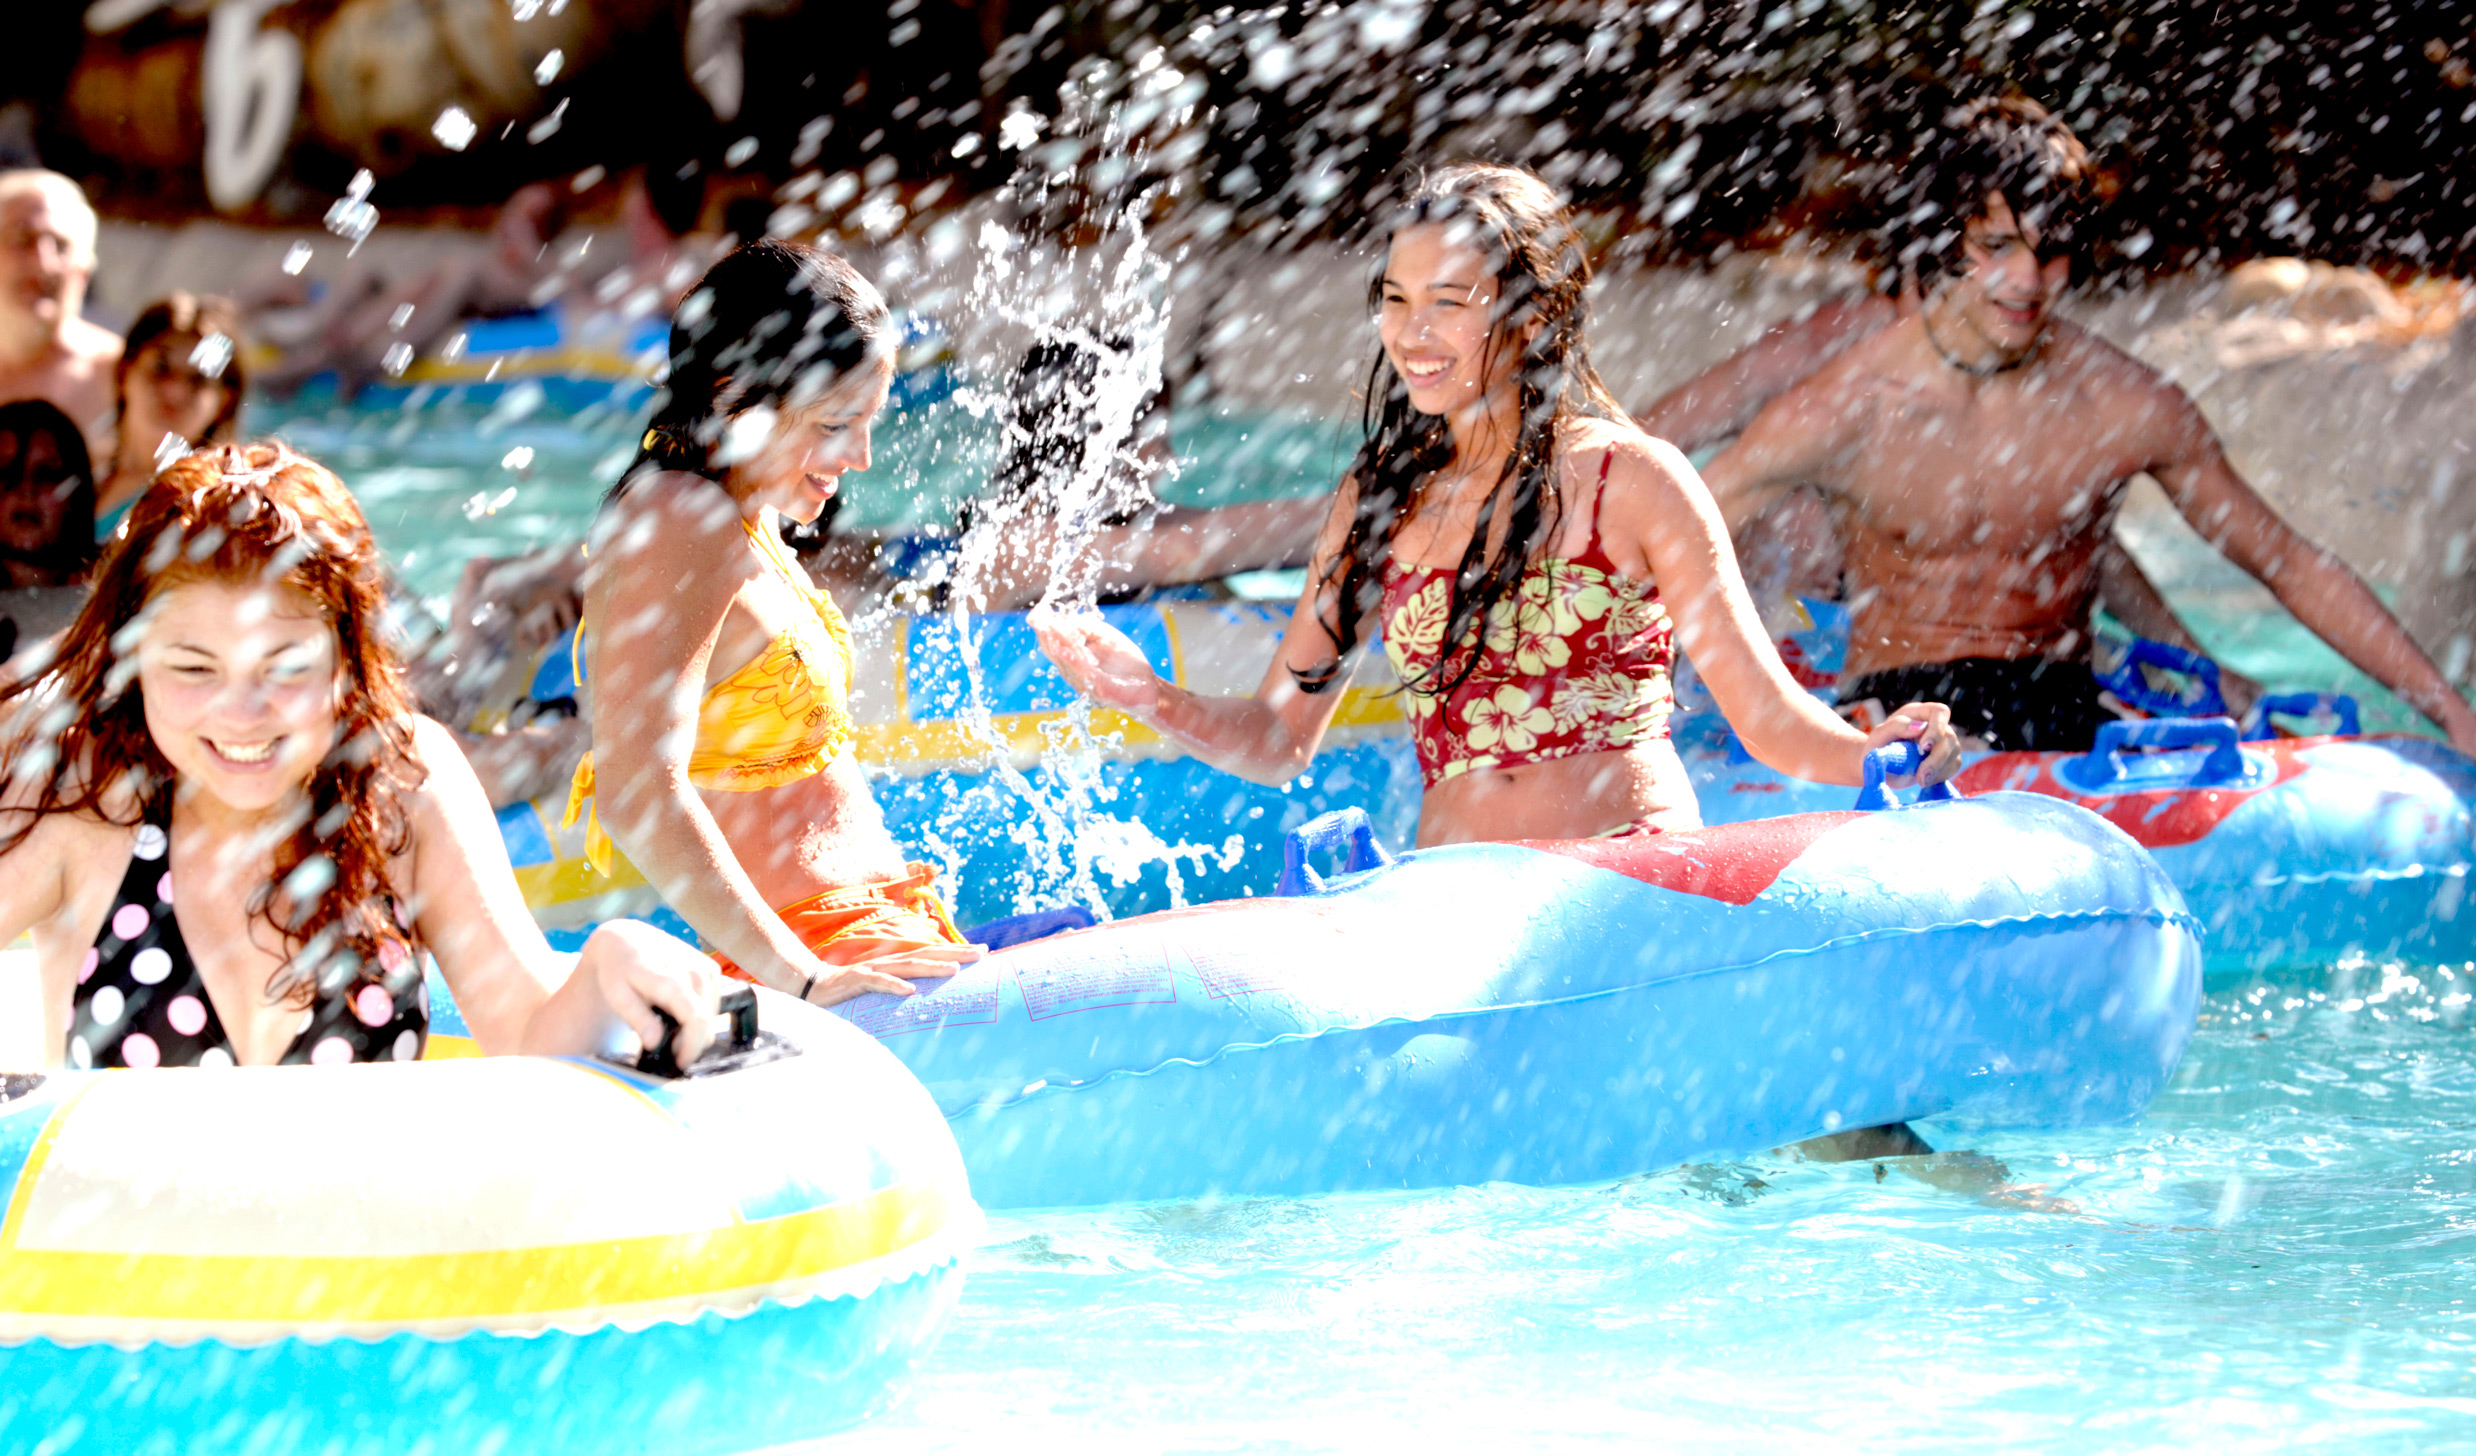 Water splashes about as several young Guests play with inner tubes in the Typhoon Lagoon Surf Pool